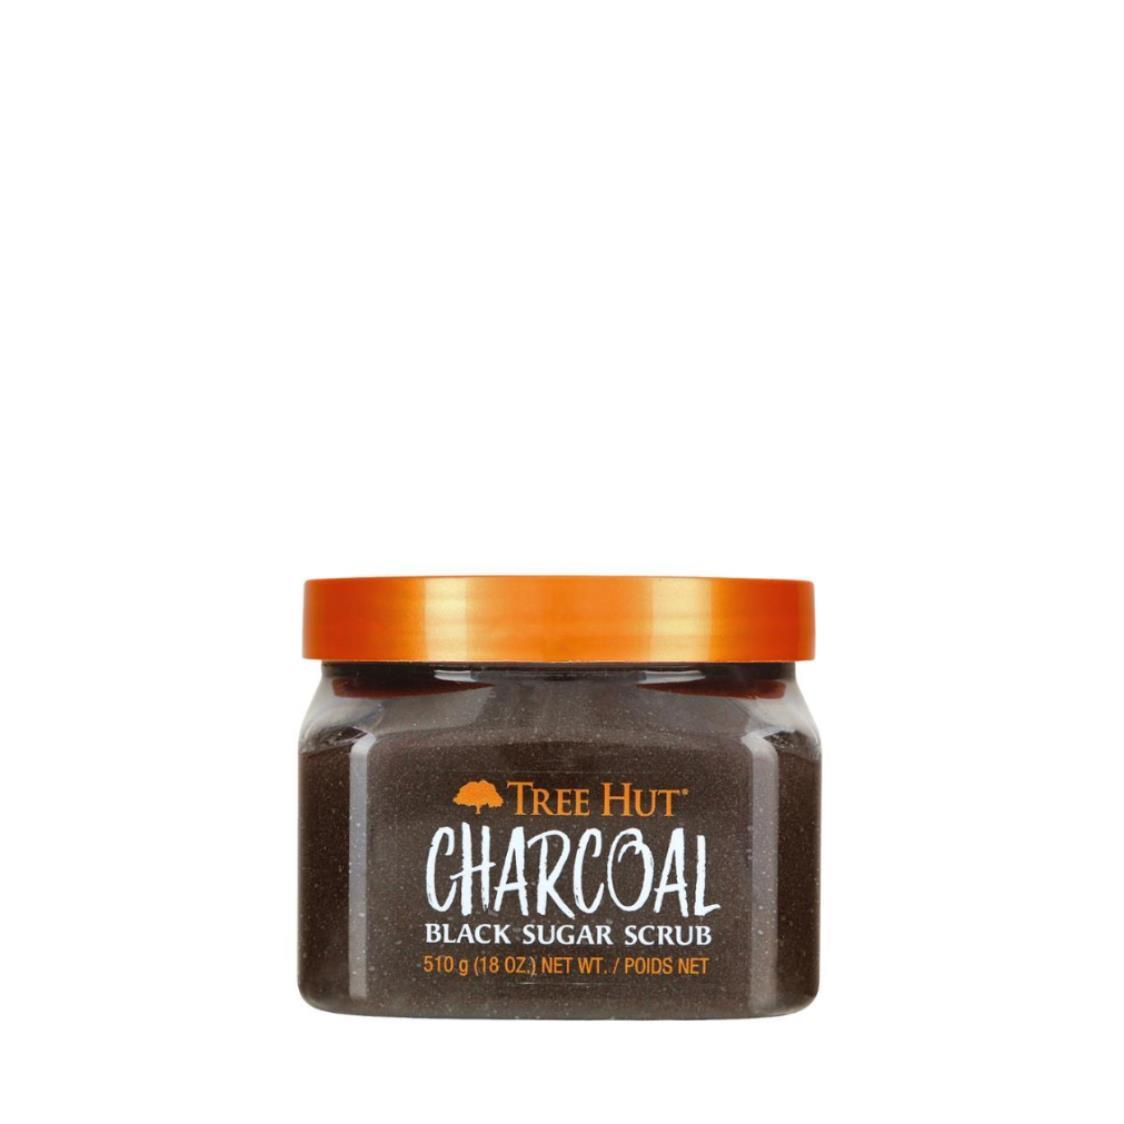 Charcoal Black Sugar Scrub 18oz 510g